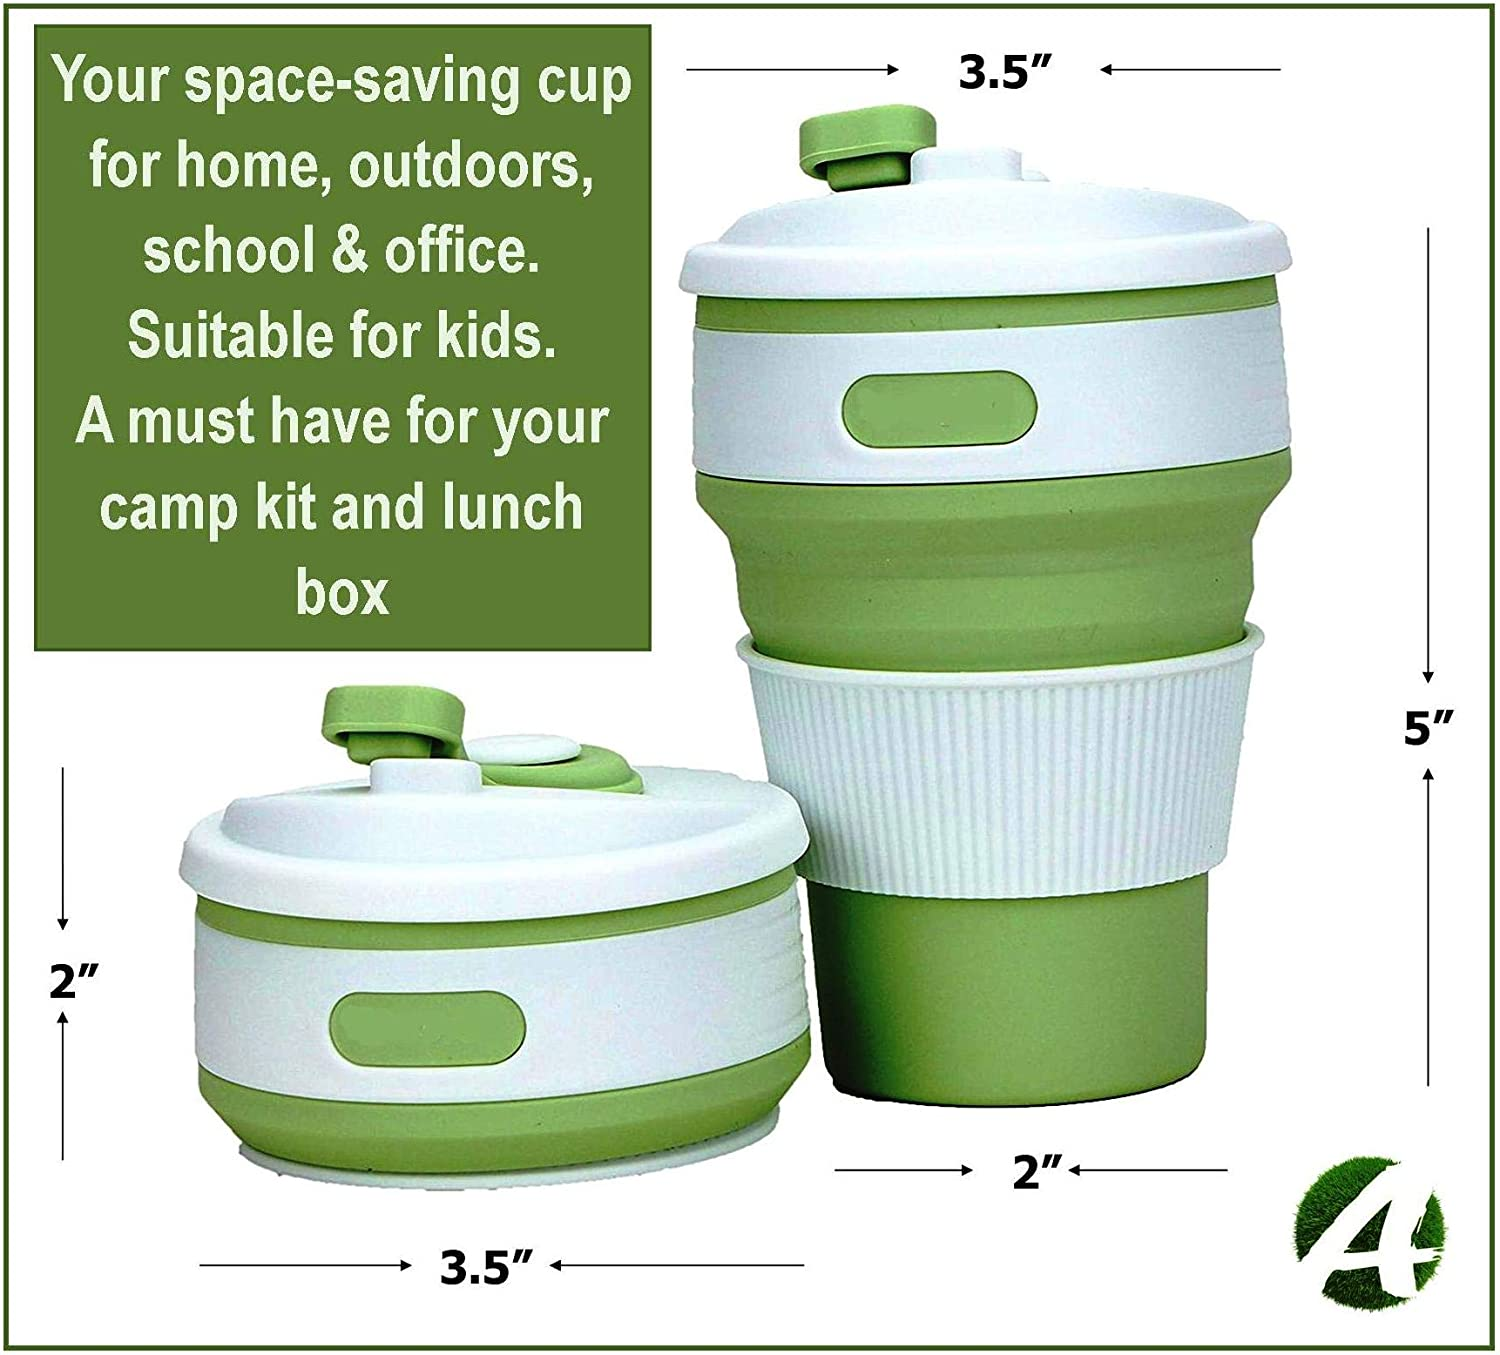 Tea AVALEISURE Collapsible Coffee Mug Soft Drinks Picnic Travel Ideal for Camping Hiking Lunch Coffee a Foldable 12oz Drinking Cup with Lid for Water